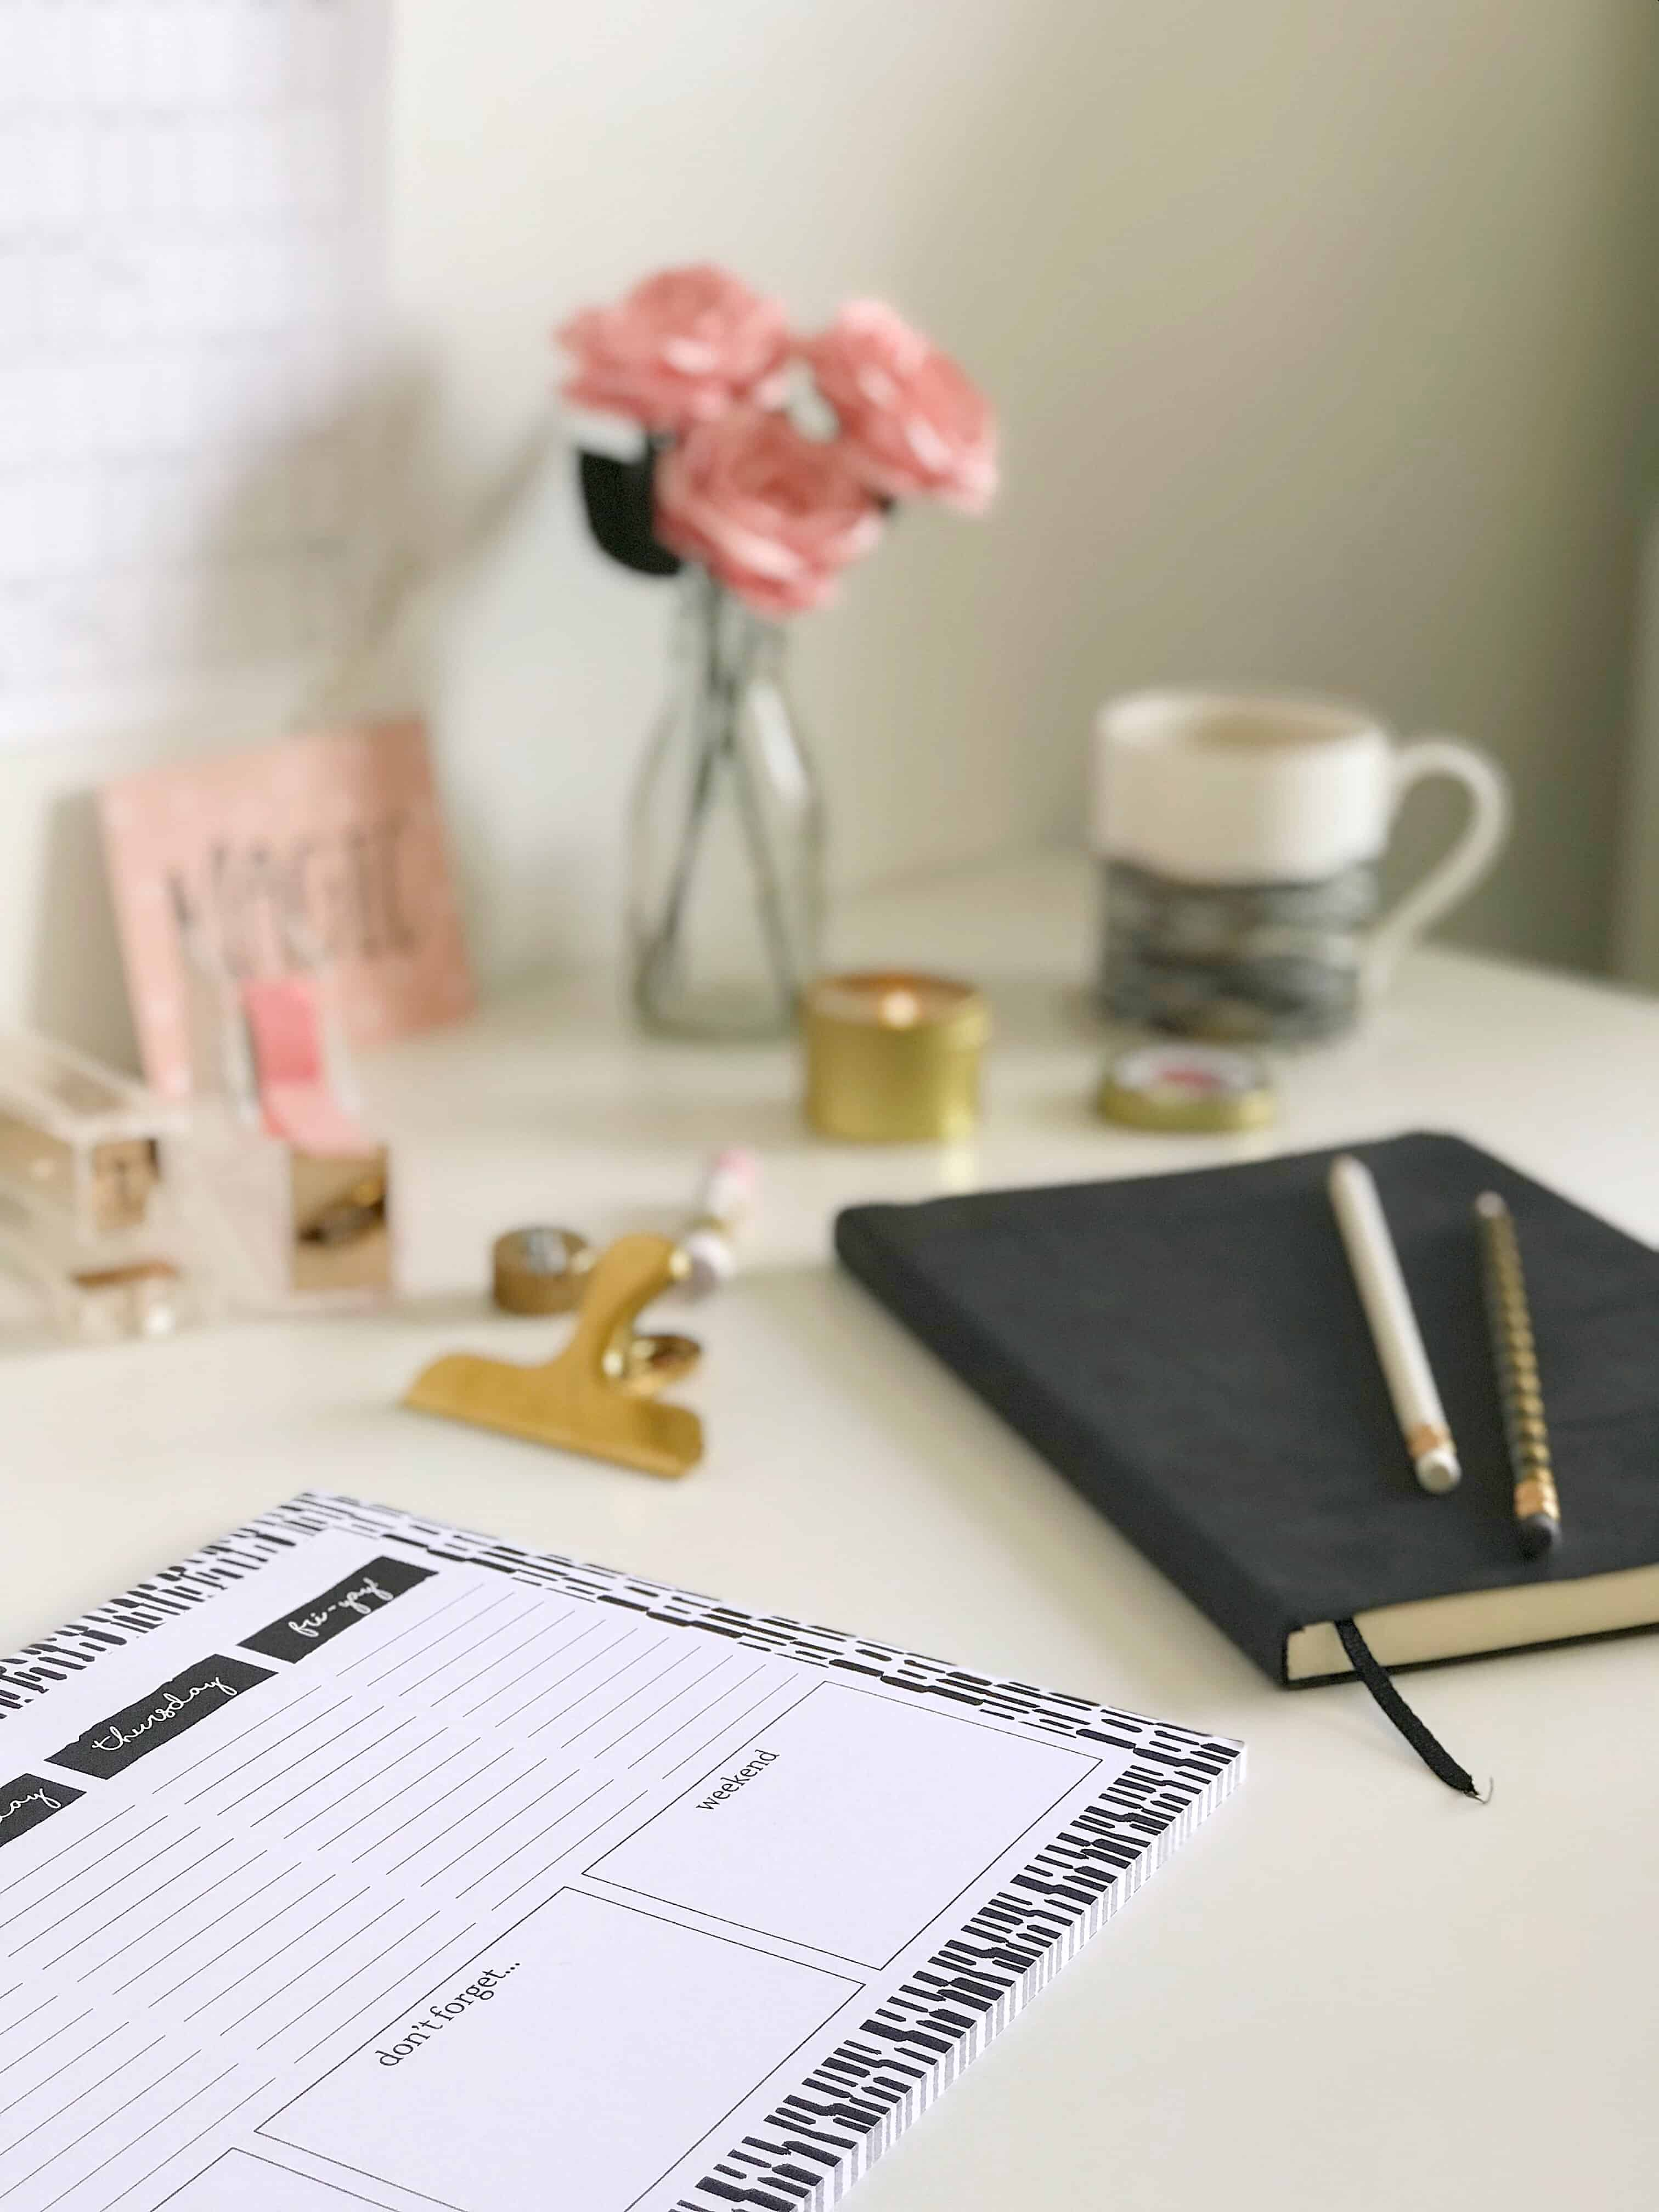 Monochrome desk planner and black notebook